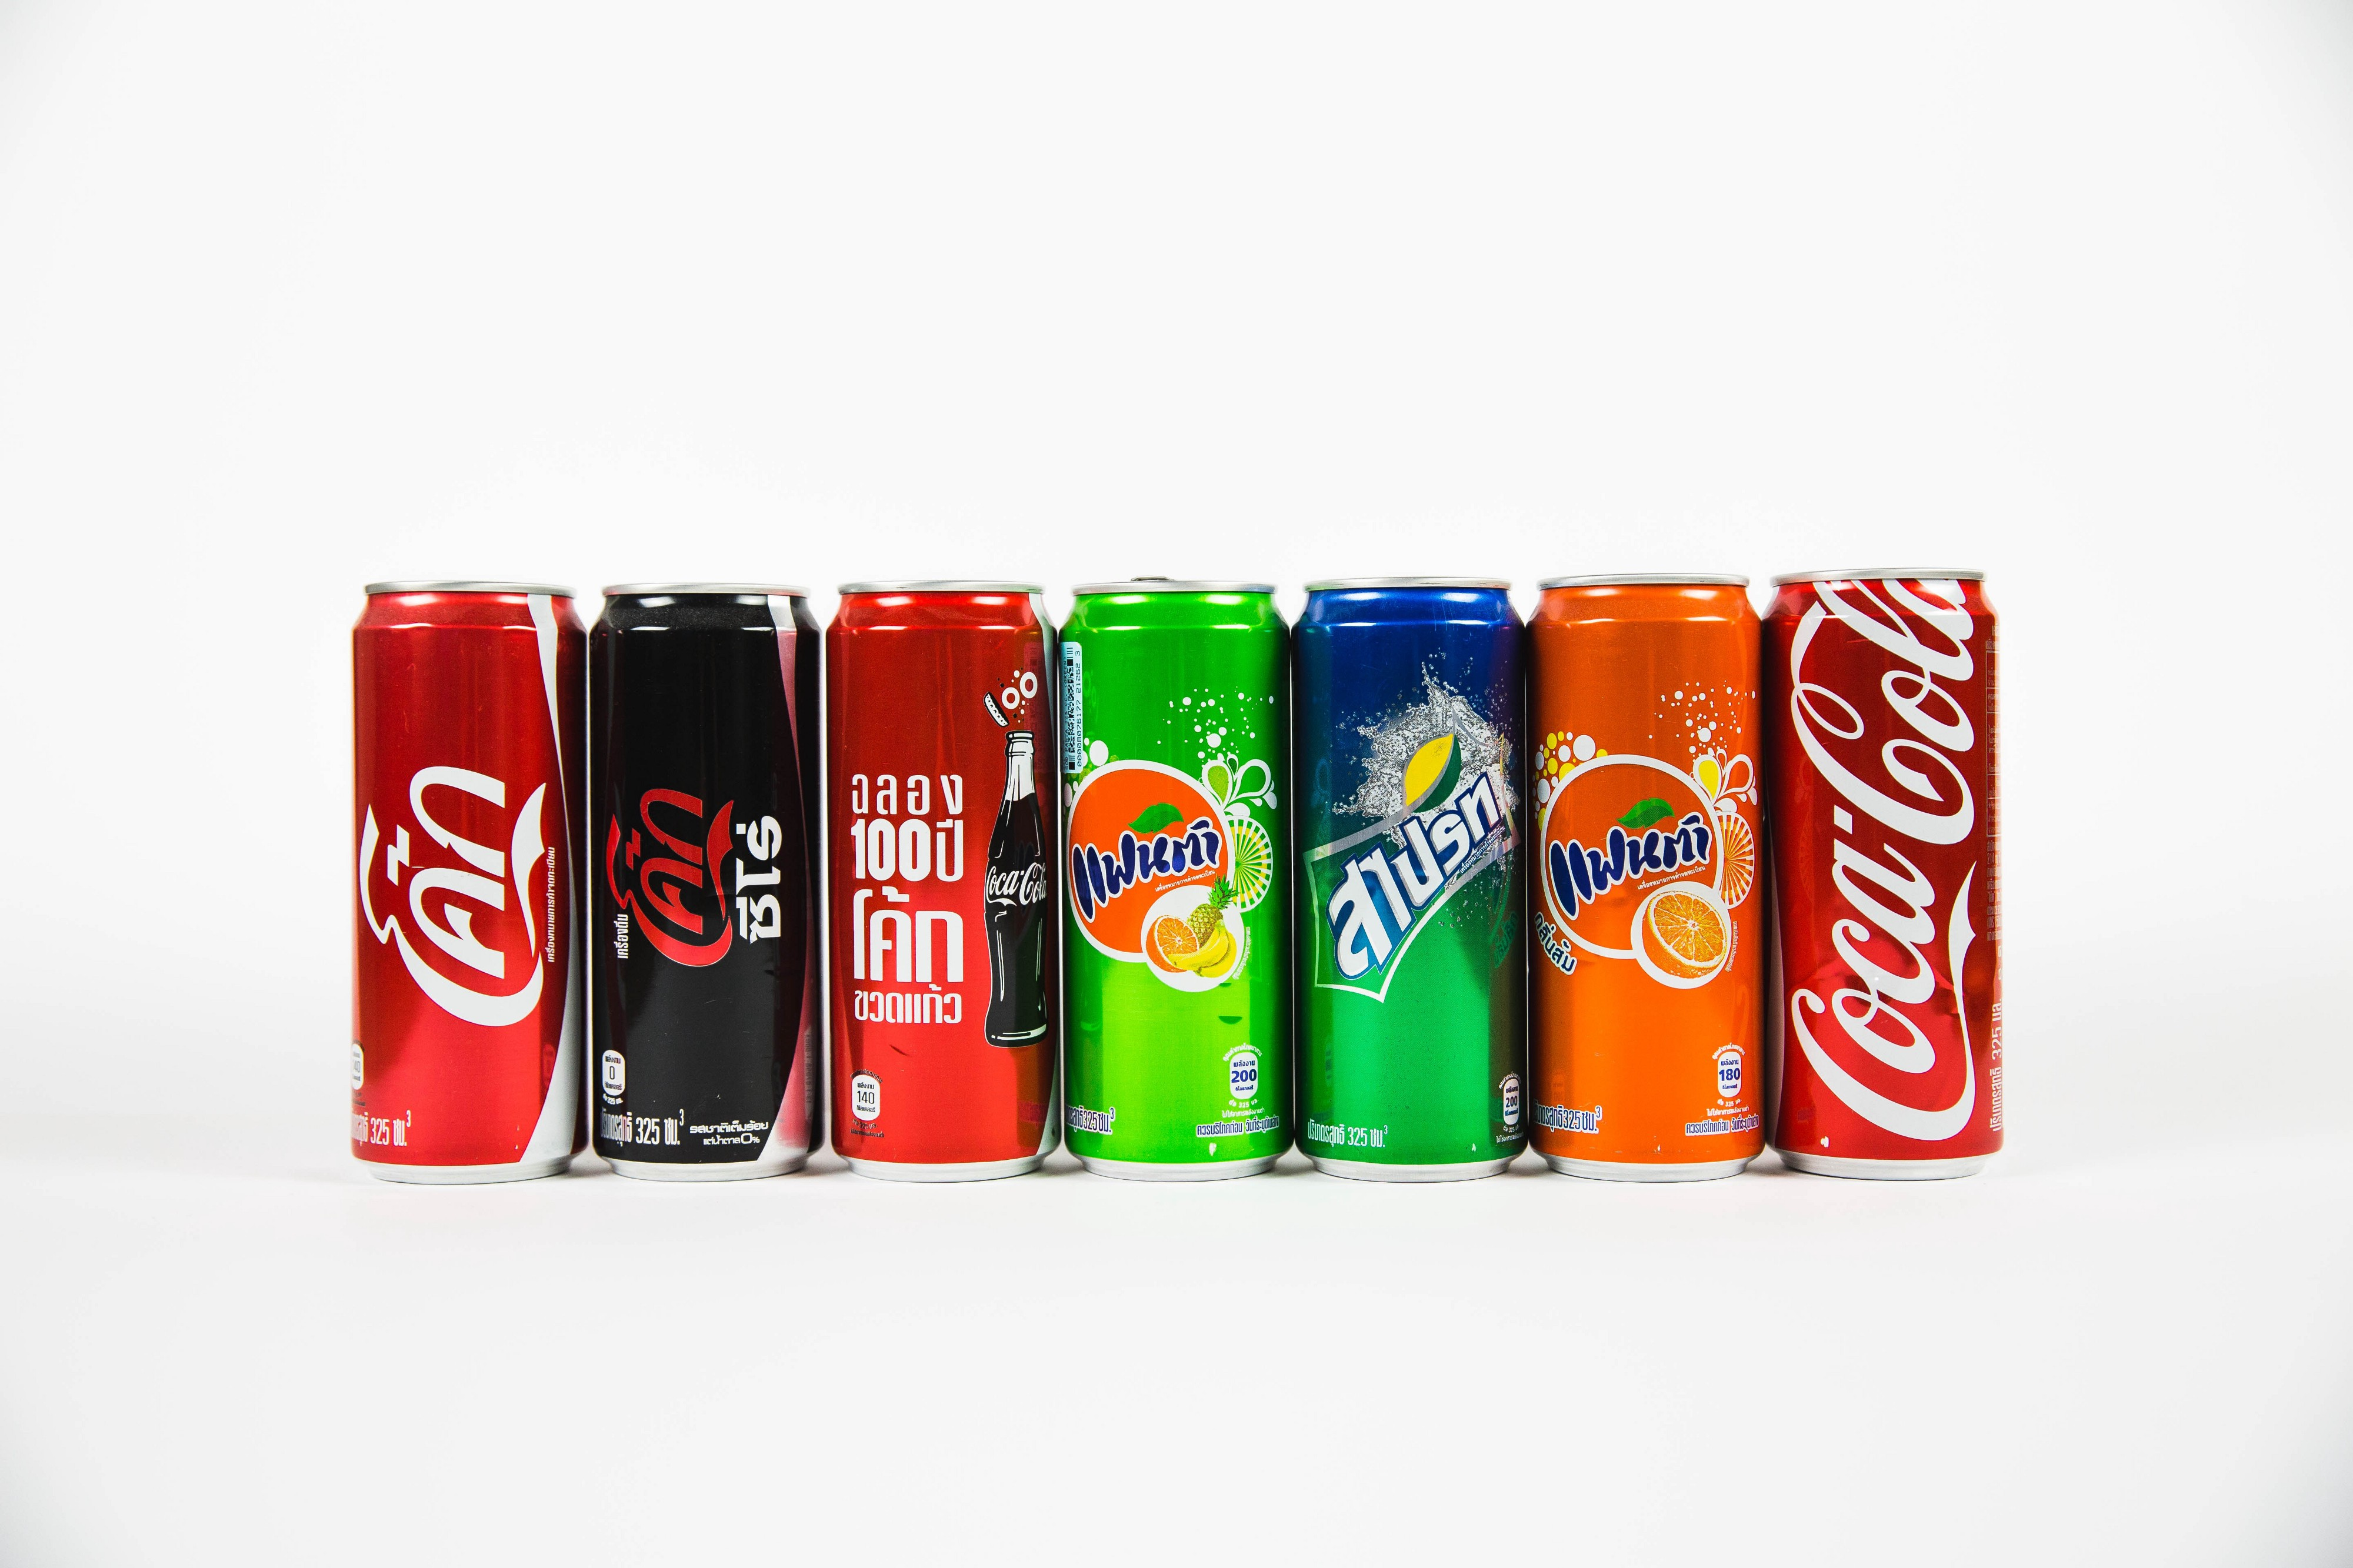 can you lose weight by drinking coke